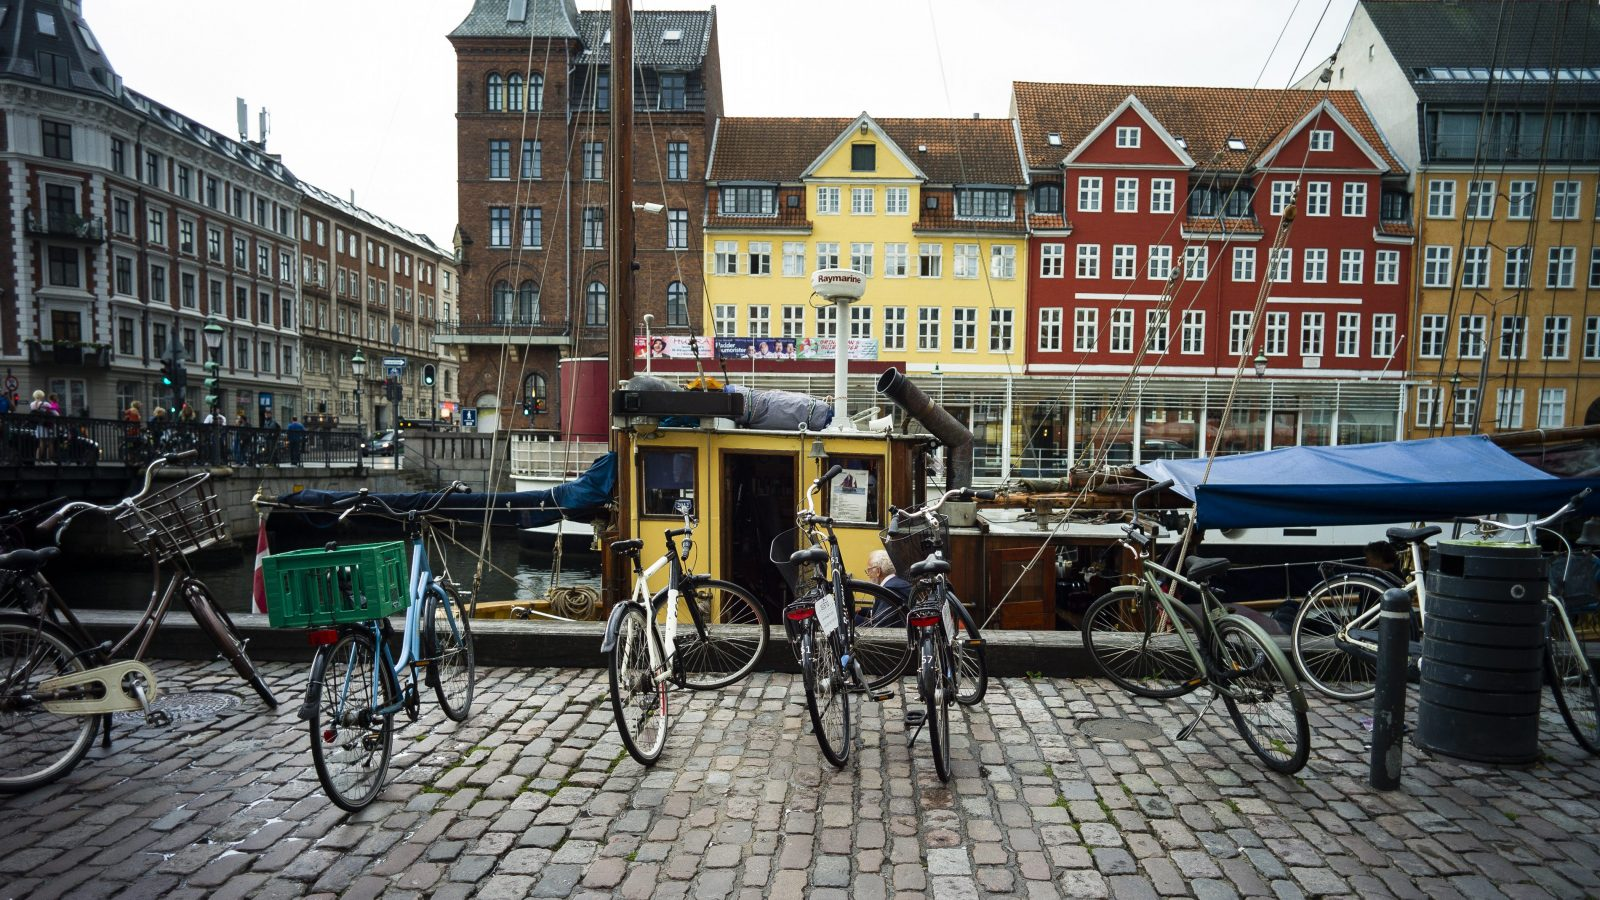 A photo shows a row of bicycles in front of a canal and colorful buildings.